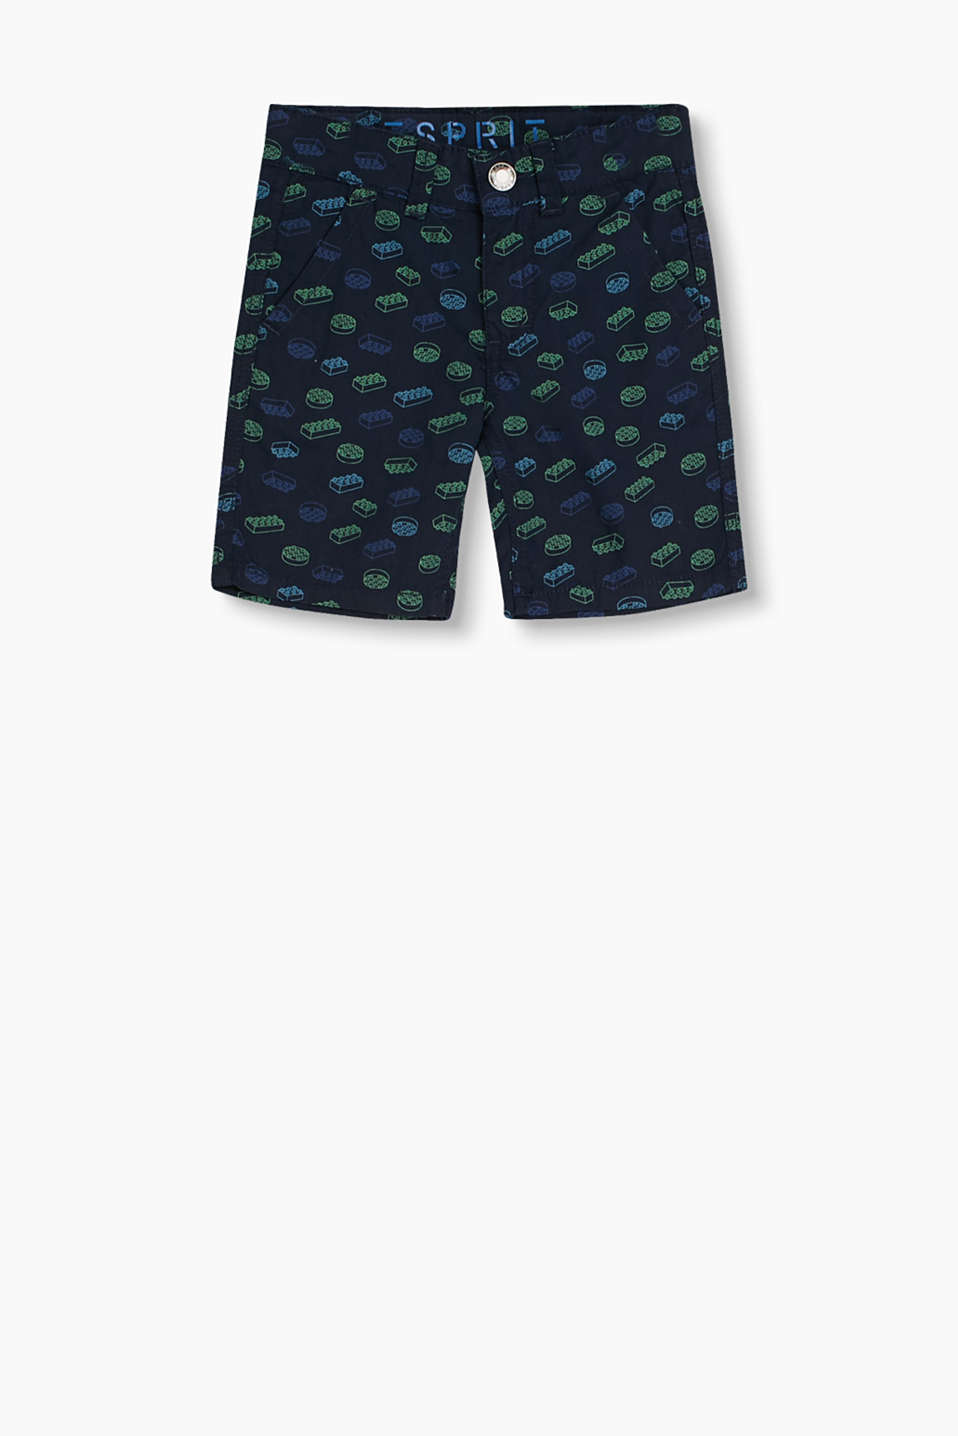 Cotton shorts with a lego print and practical, adjustable waistband